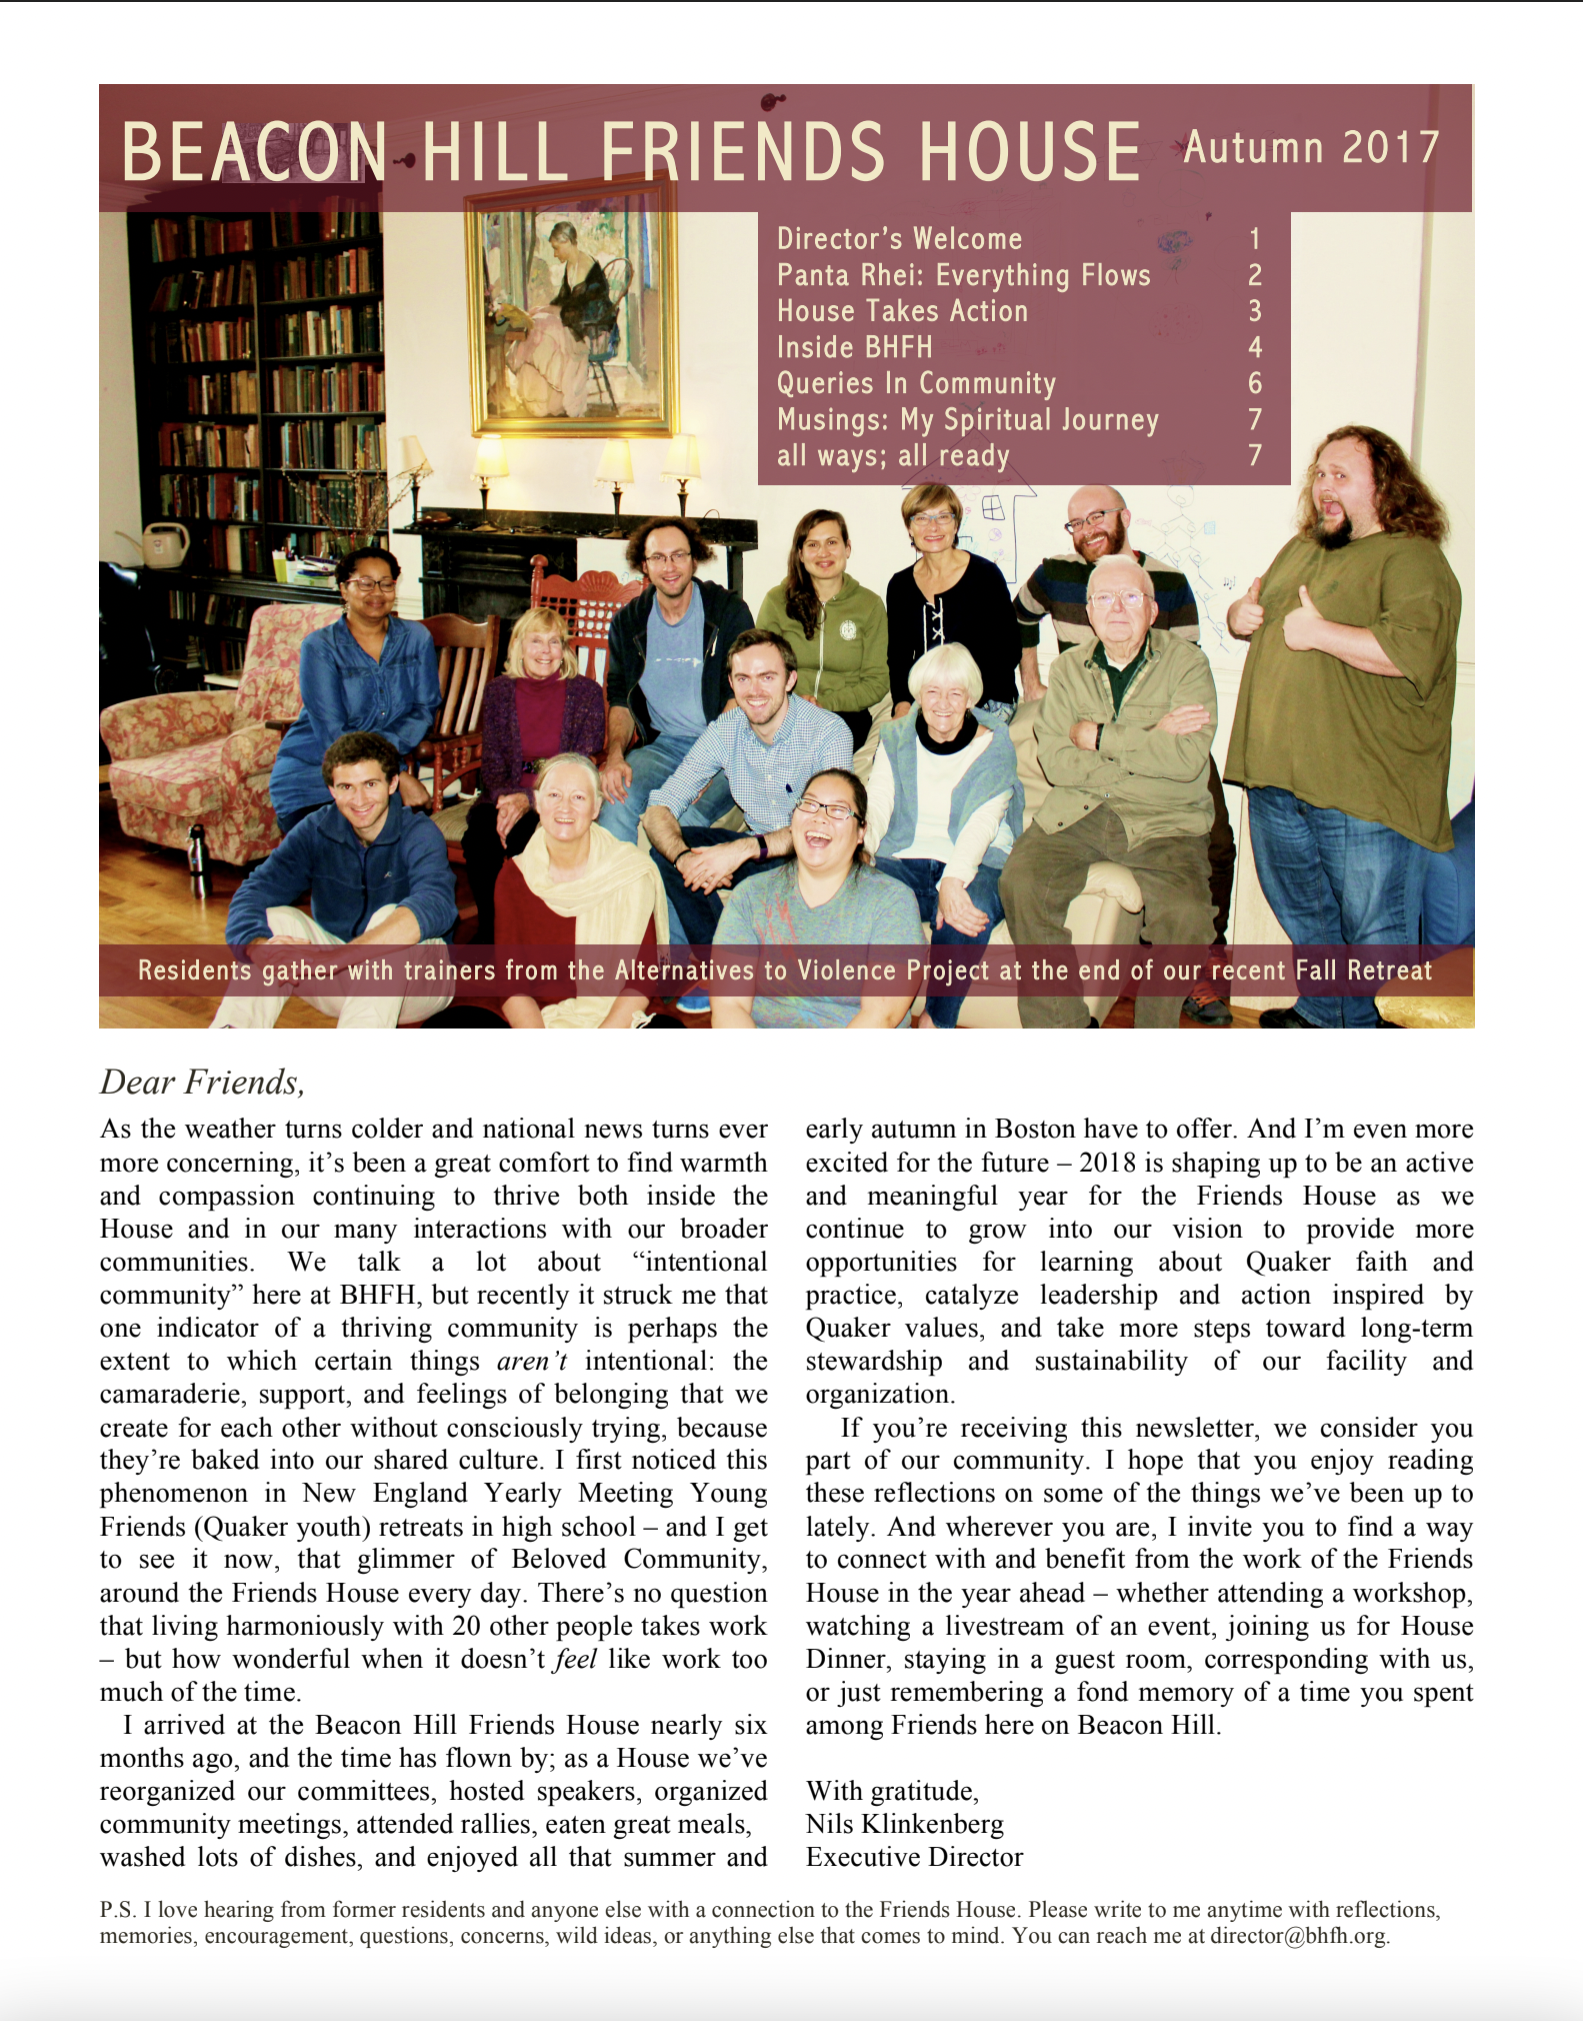 First page of fall/winter 2017 newsletter